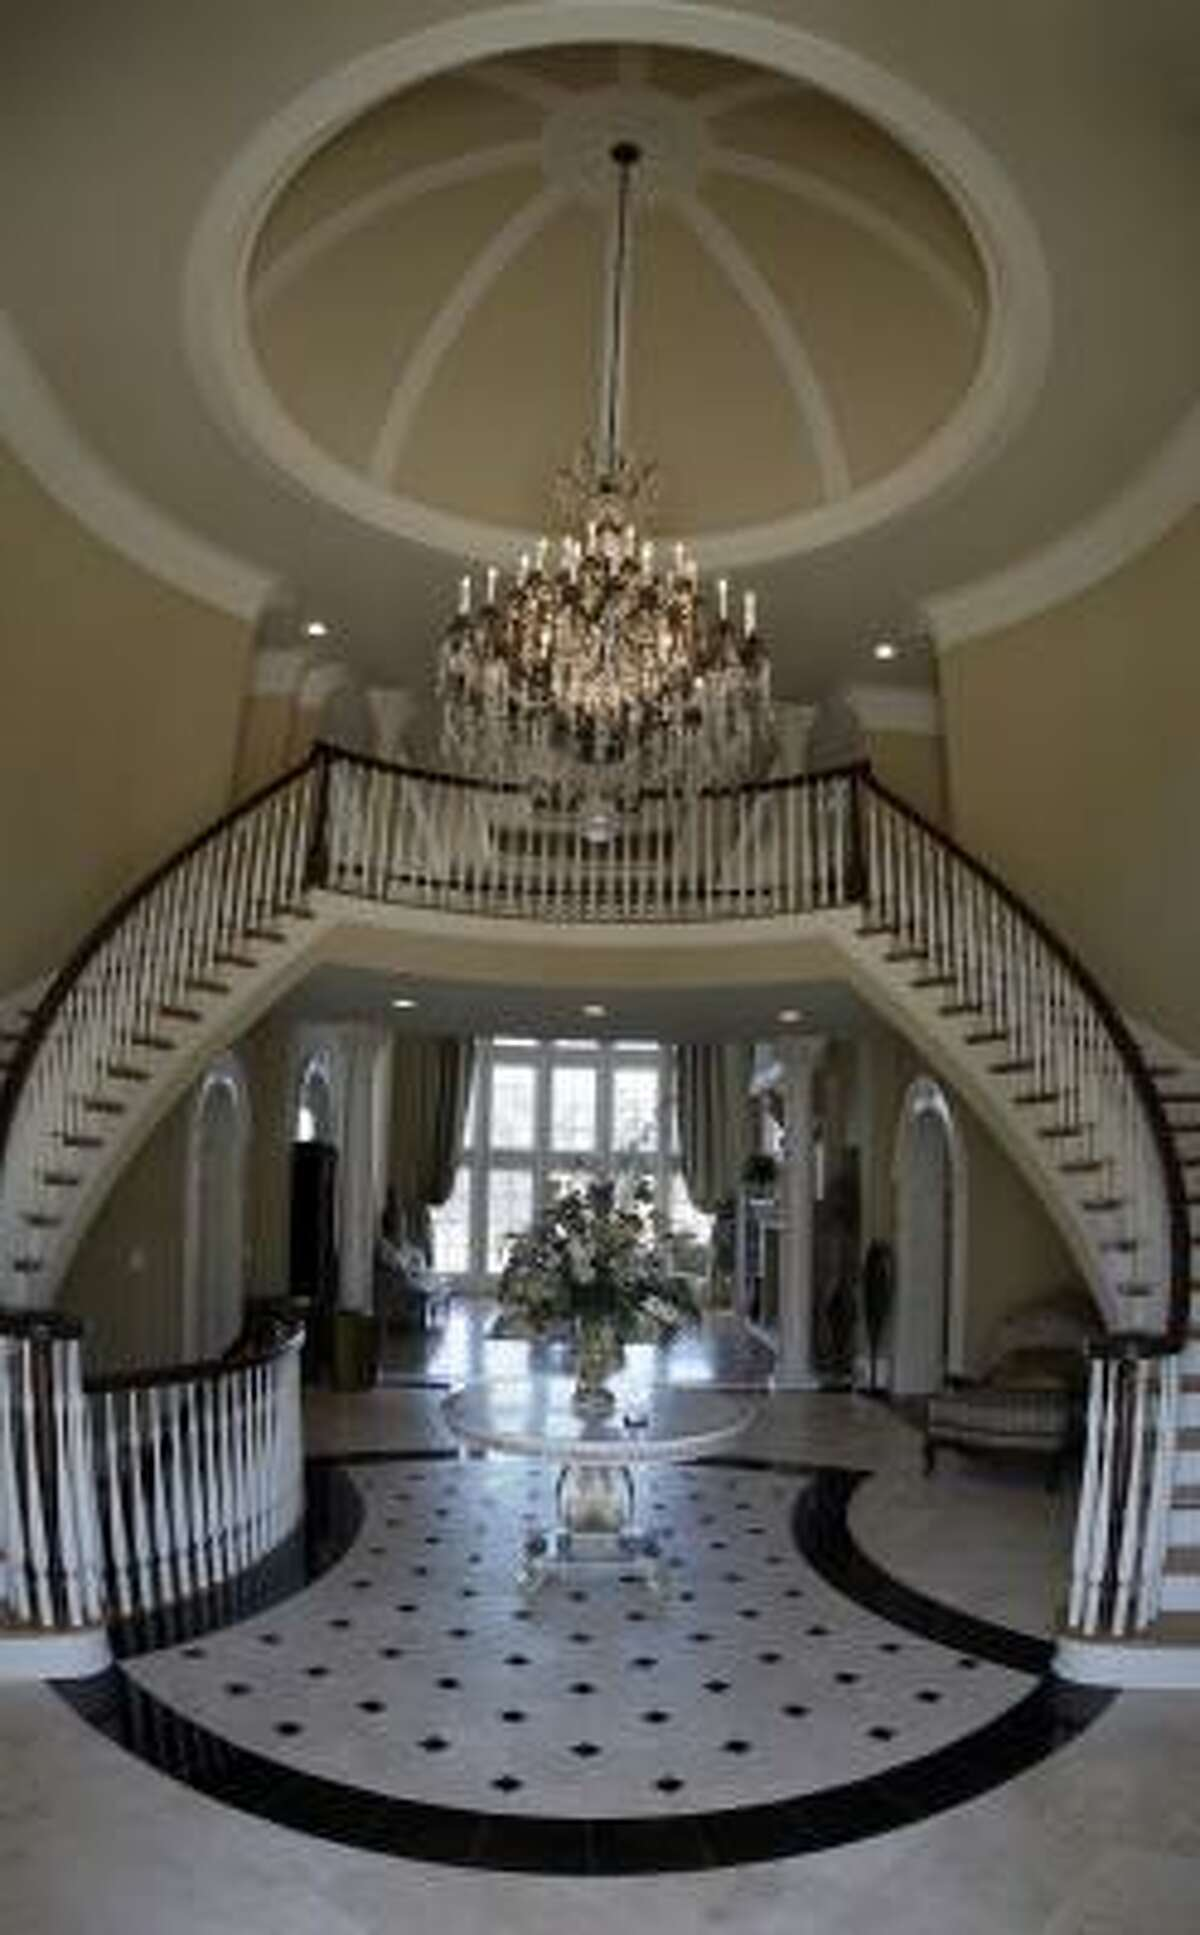 The entrance to the home.